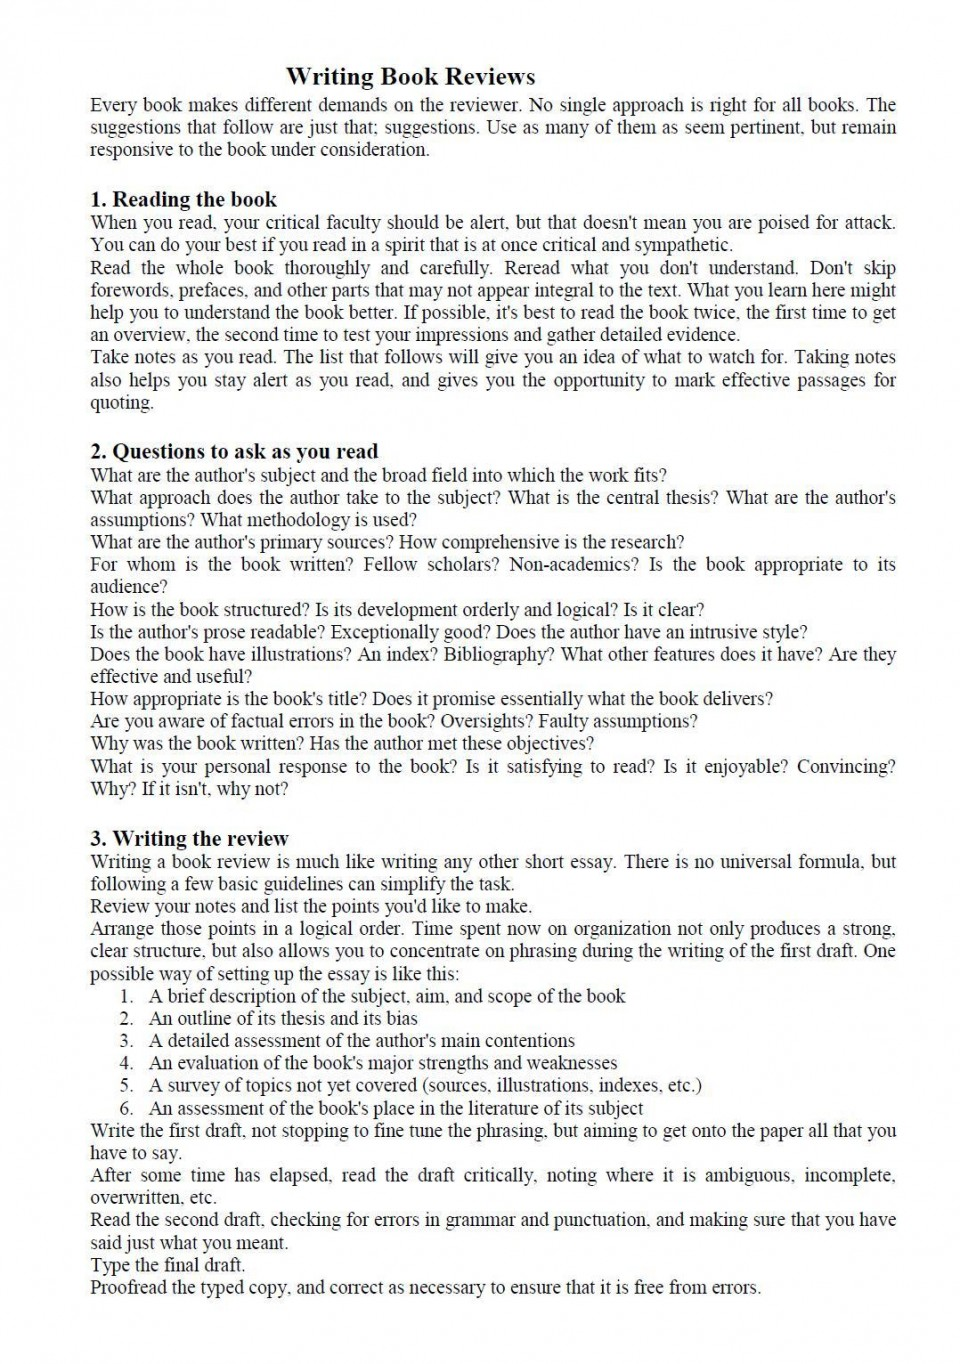 003 Book Essay Example How To Write Impressive Report Sample Examples Of Literary 960